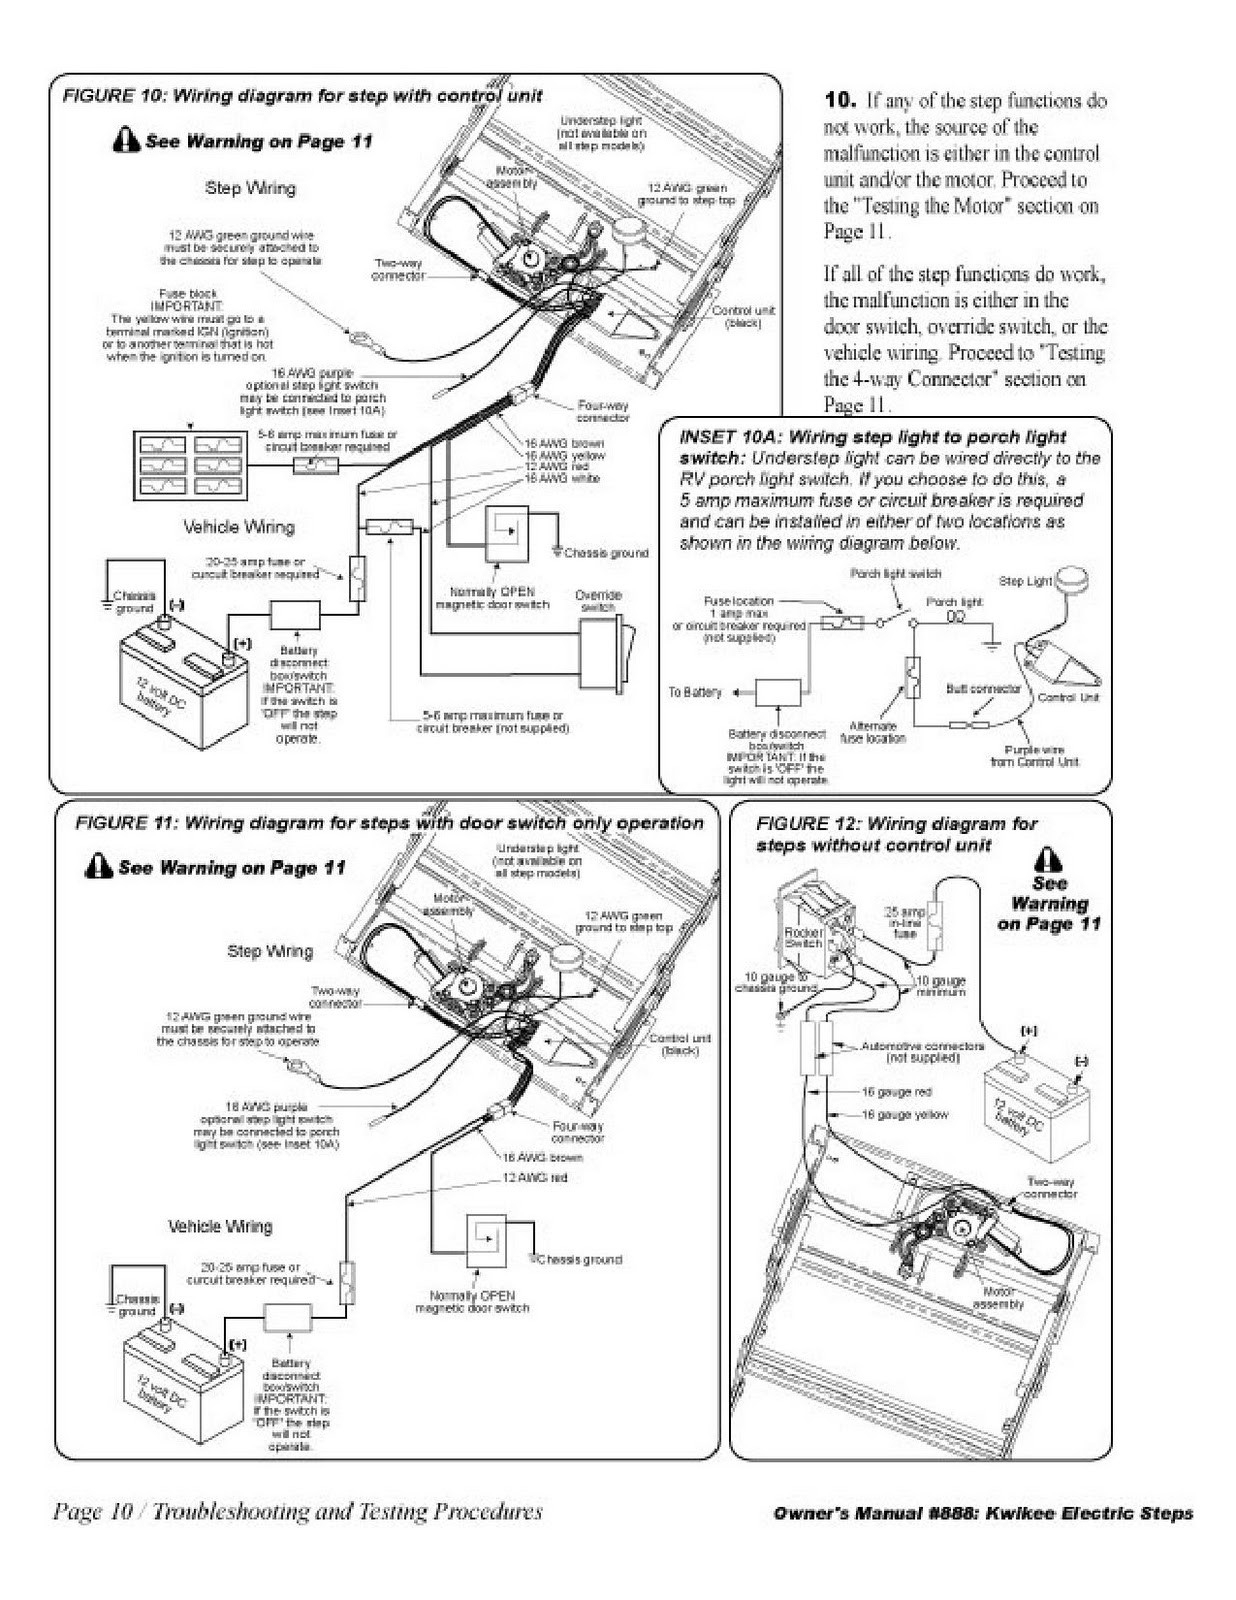 kwikee electric step wiring diagram Download-Wiring Diagram For Rv Steps New Diagram Kwikee Electric Step Wiring Diagram Pdfkwikee Pdf 83 14-n